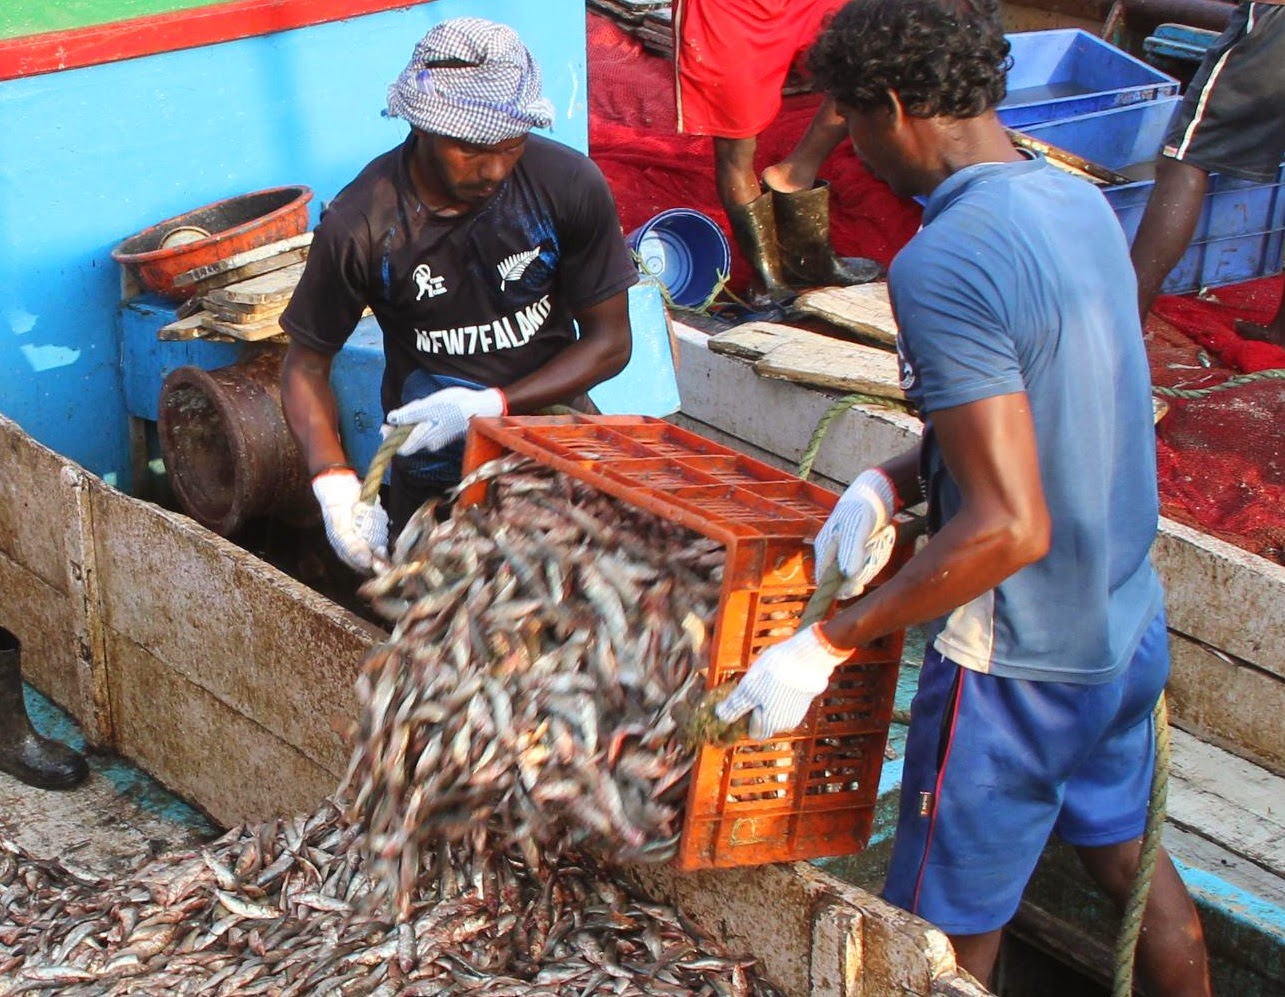 http://www.thenational.ae/uae/environment/fish-prices-on-the-rise-as-bad-weather-hampers-uae-fishermen